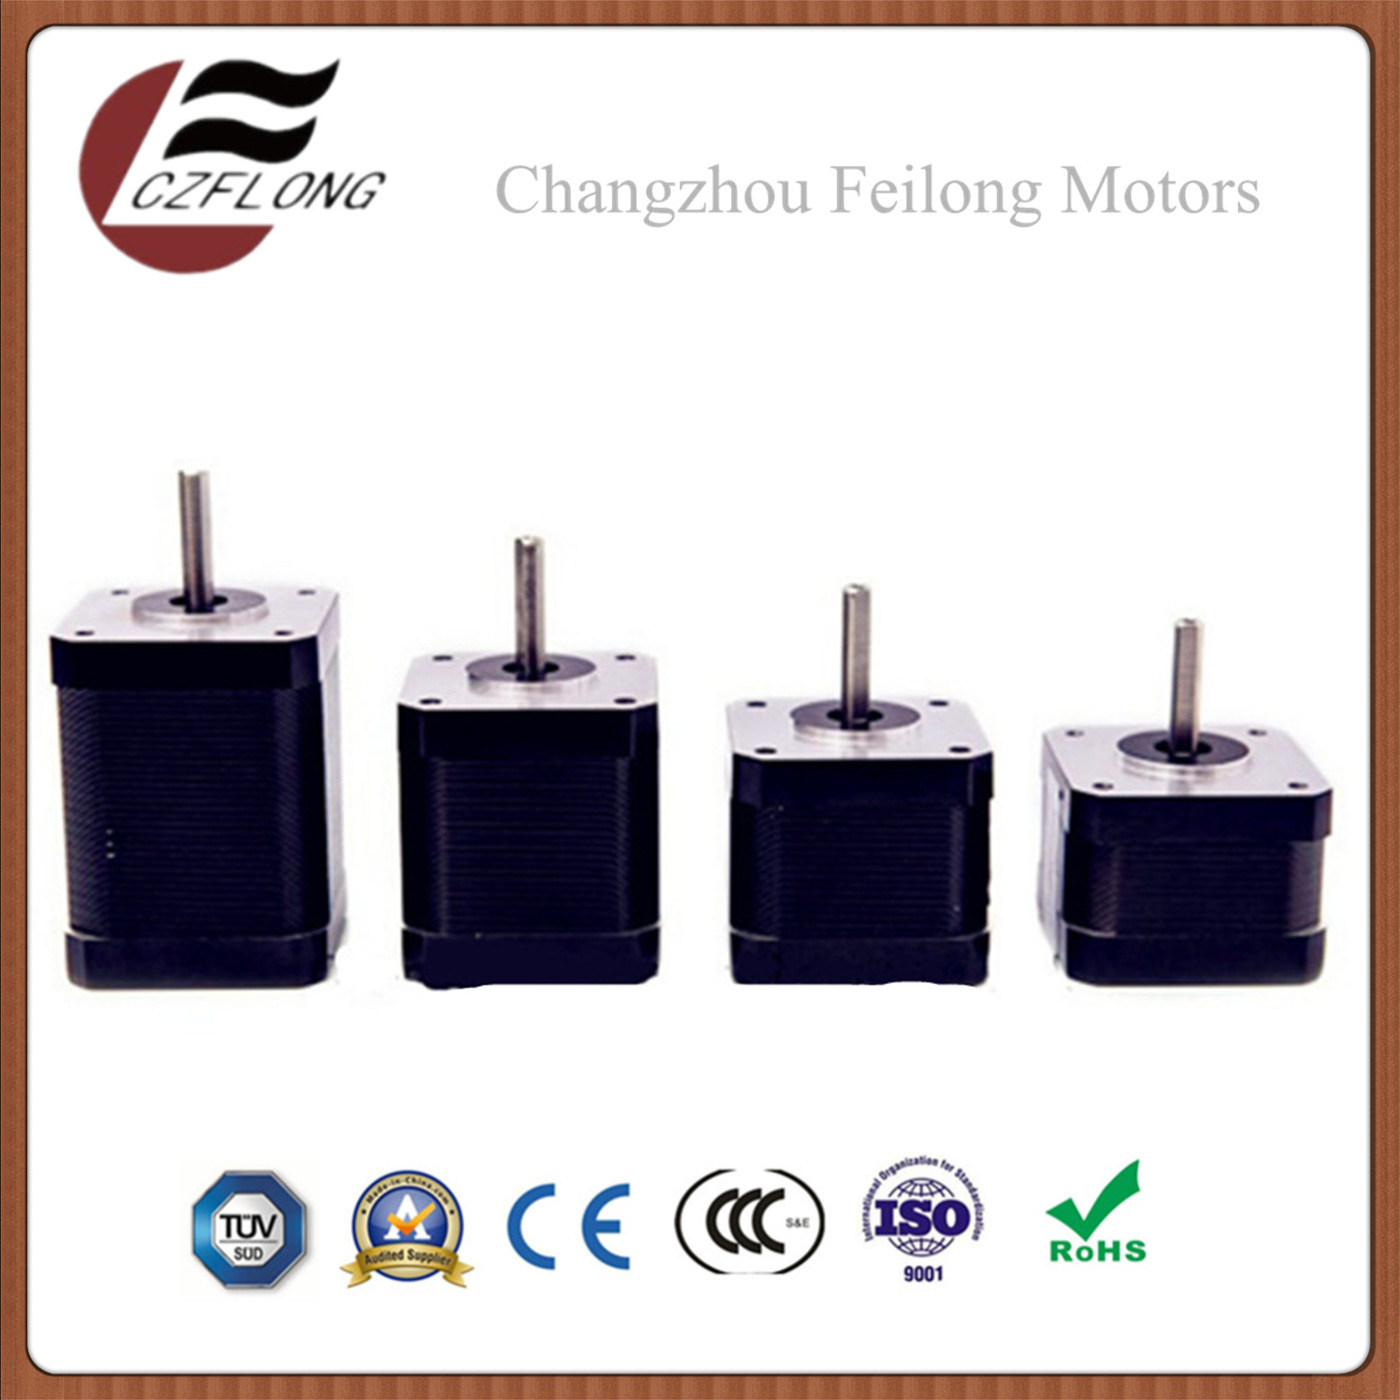 High Quality 1.8deg 2phase NEMA34 Stepping Motor for Sewing Machines